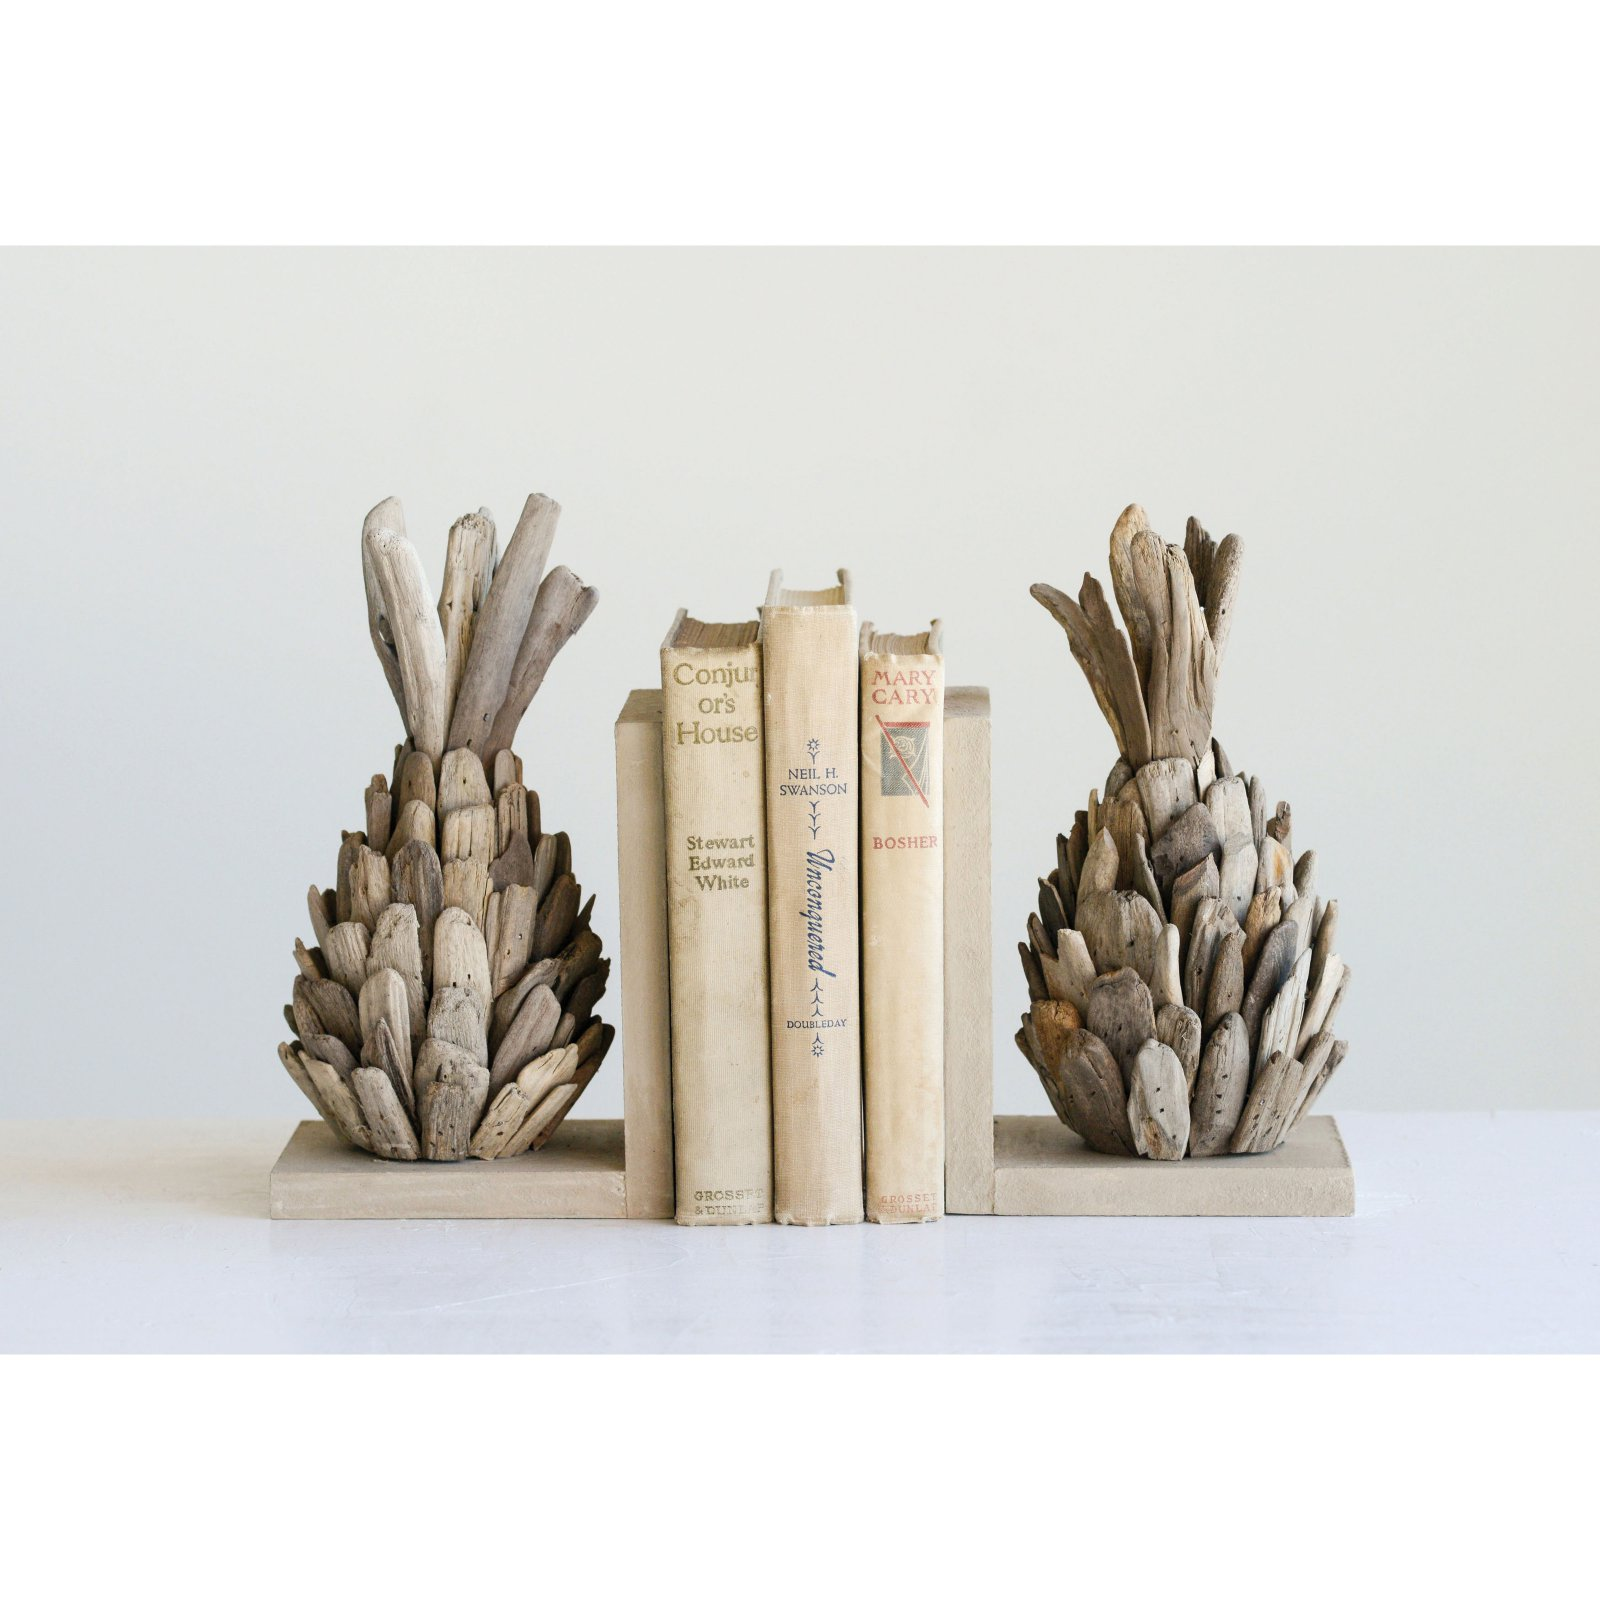 3R Studios Set of Driftwood Pineapple Bookends by Creative Co-op Inc